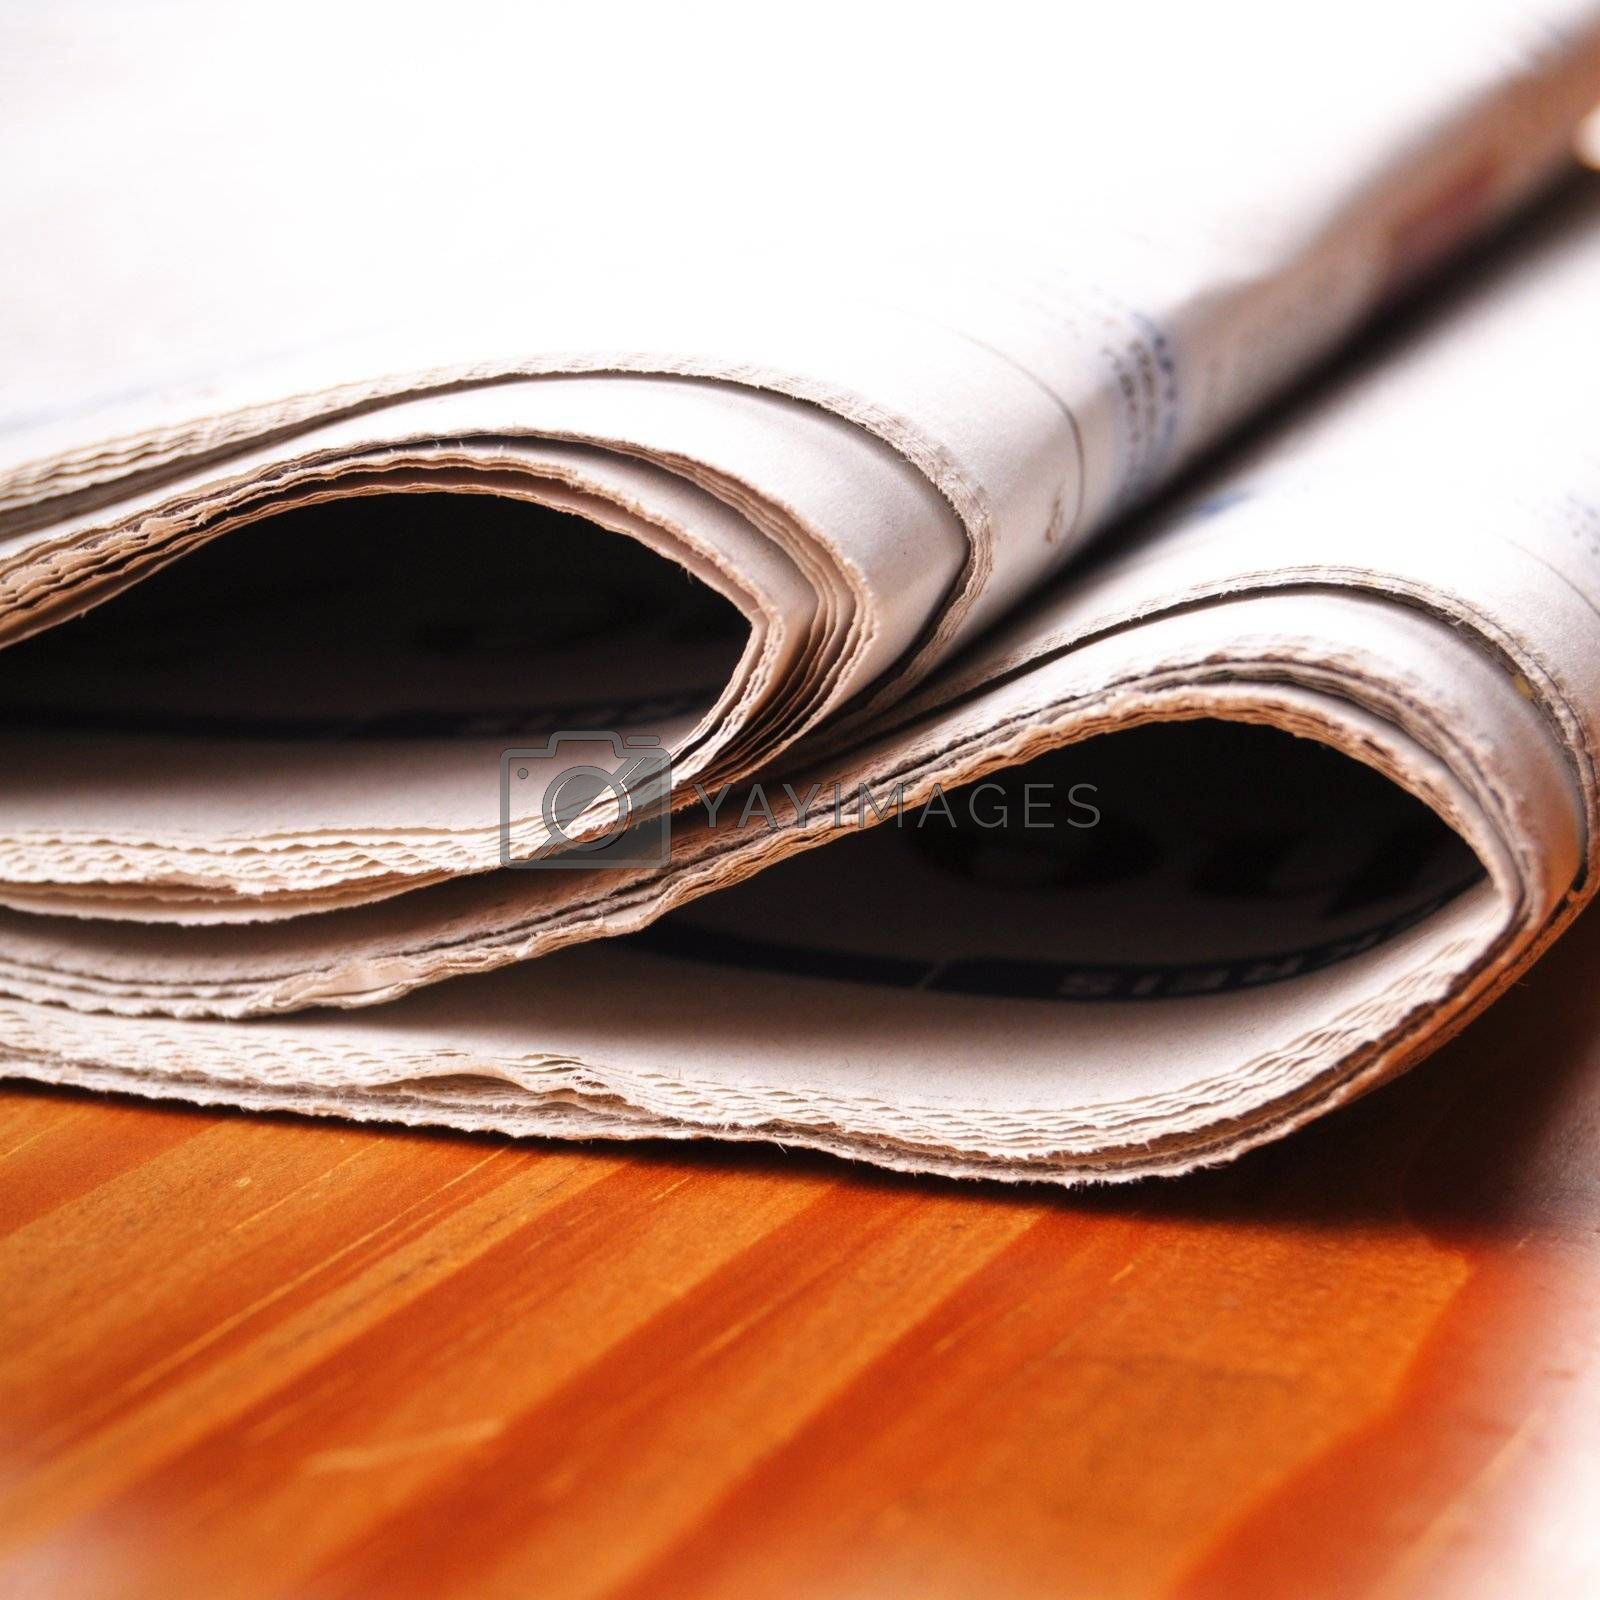 Royalty free image of newspapers by gunnar3000